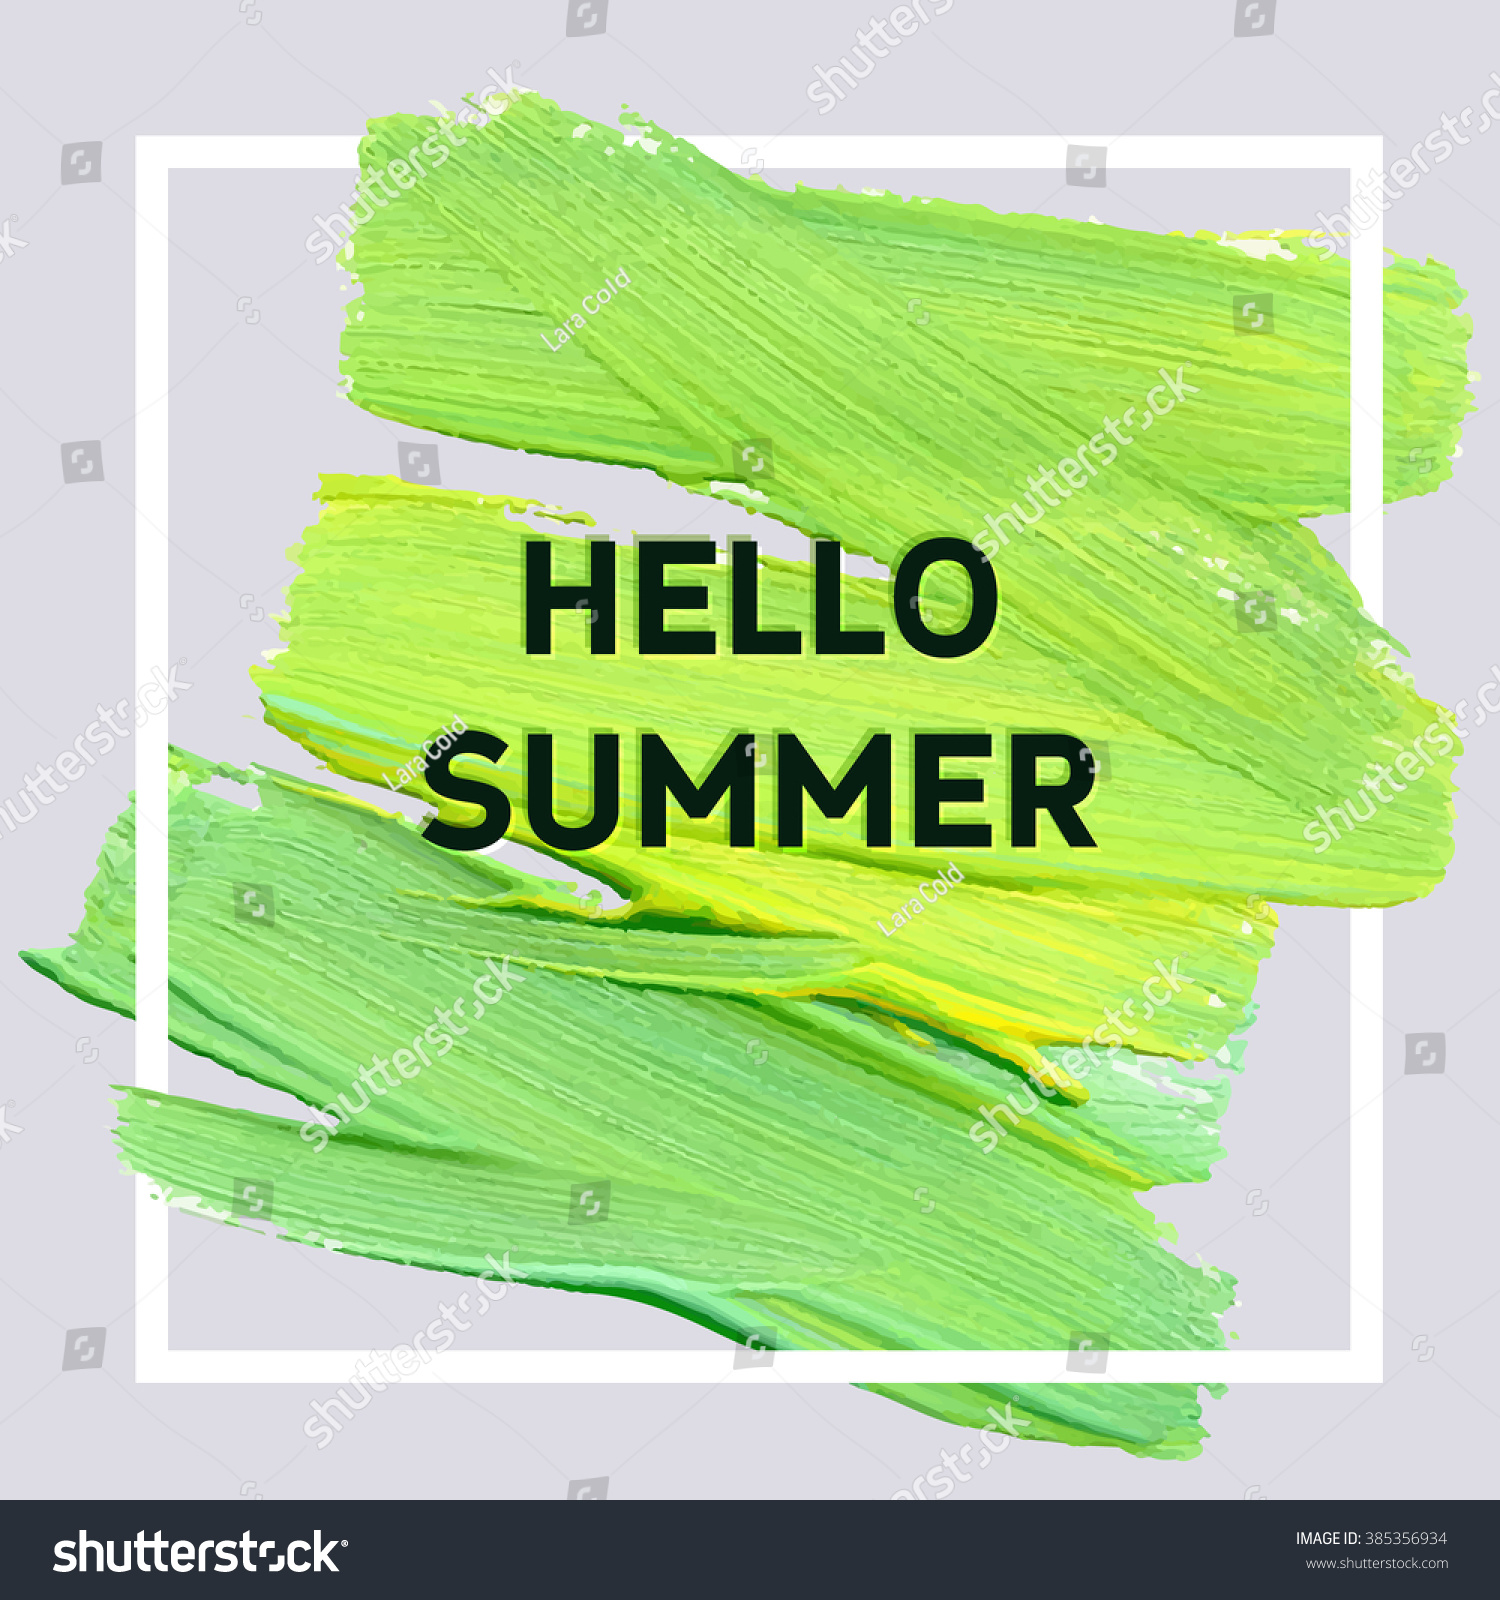 Ordinaire Hello Summer. Mood Square Acrylic Stroke Poster. Text Lettering Of An  Inspirational Saying.